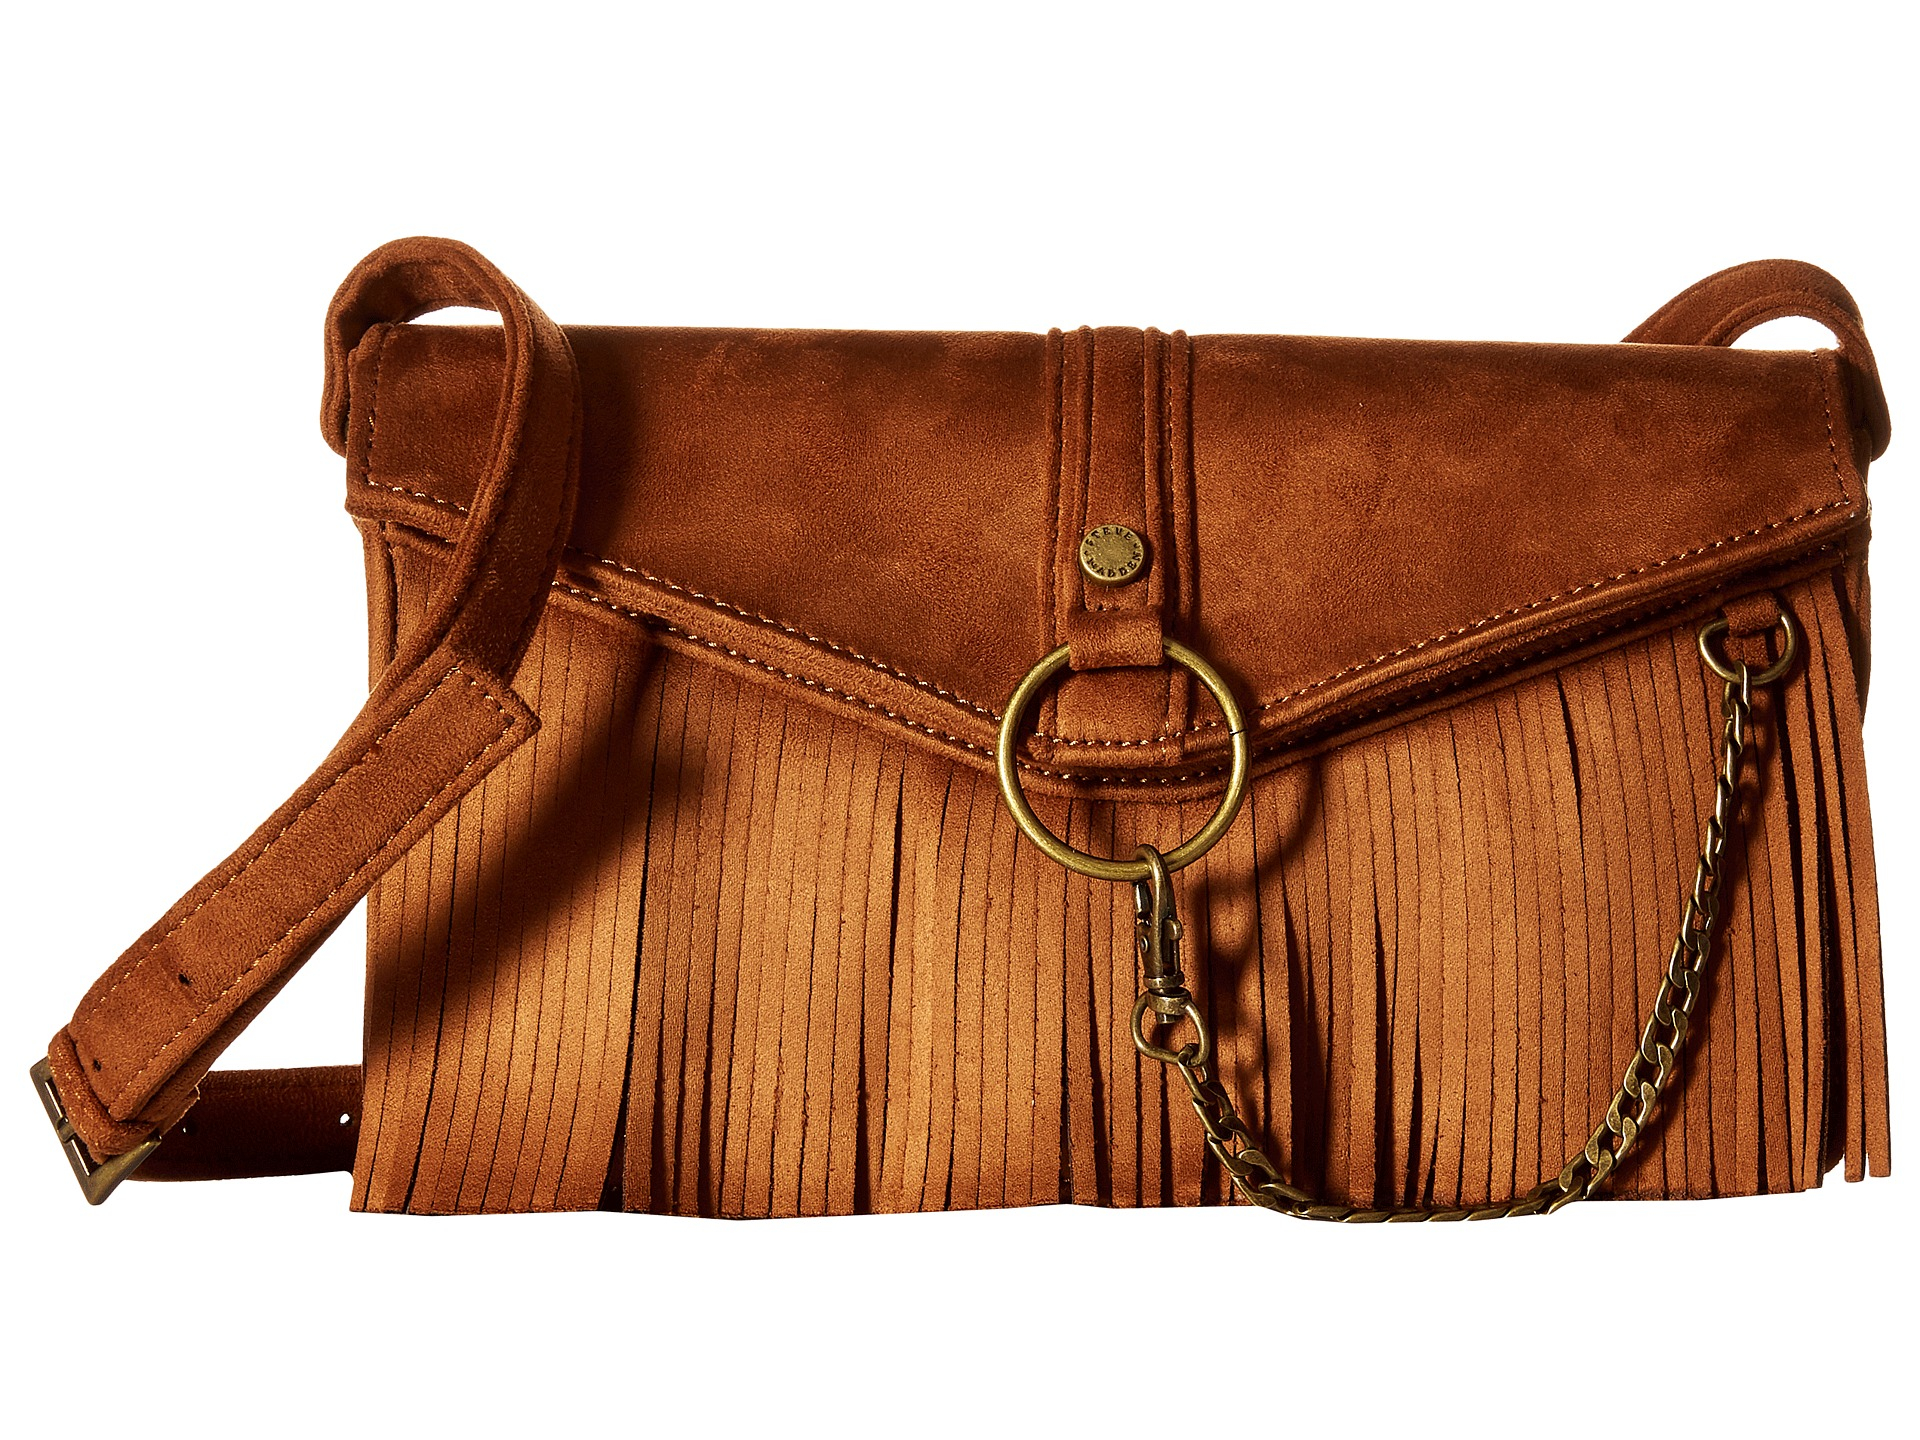 3bb8a9bf1 Steve Madden Bmocha Crossbody Fringe Purse In Black - New image Of Purse